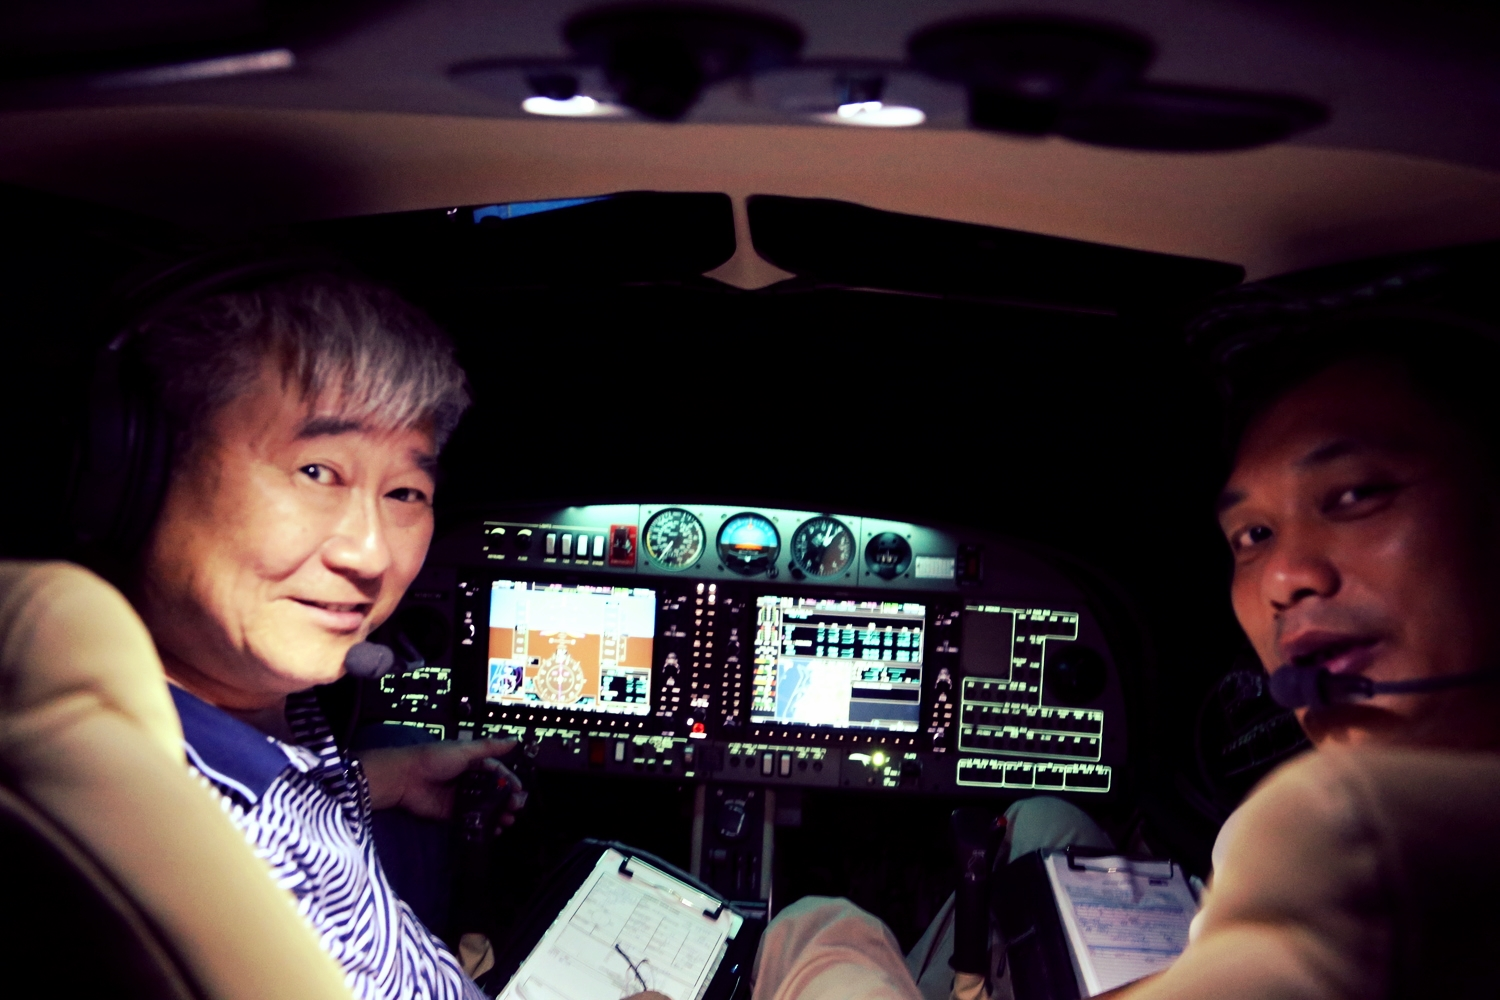 In-house instructor pilots provides aircraft familiarization training and mentor flying.